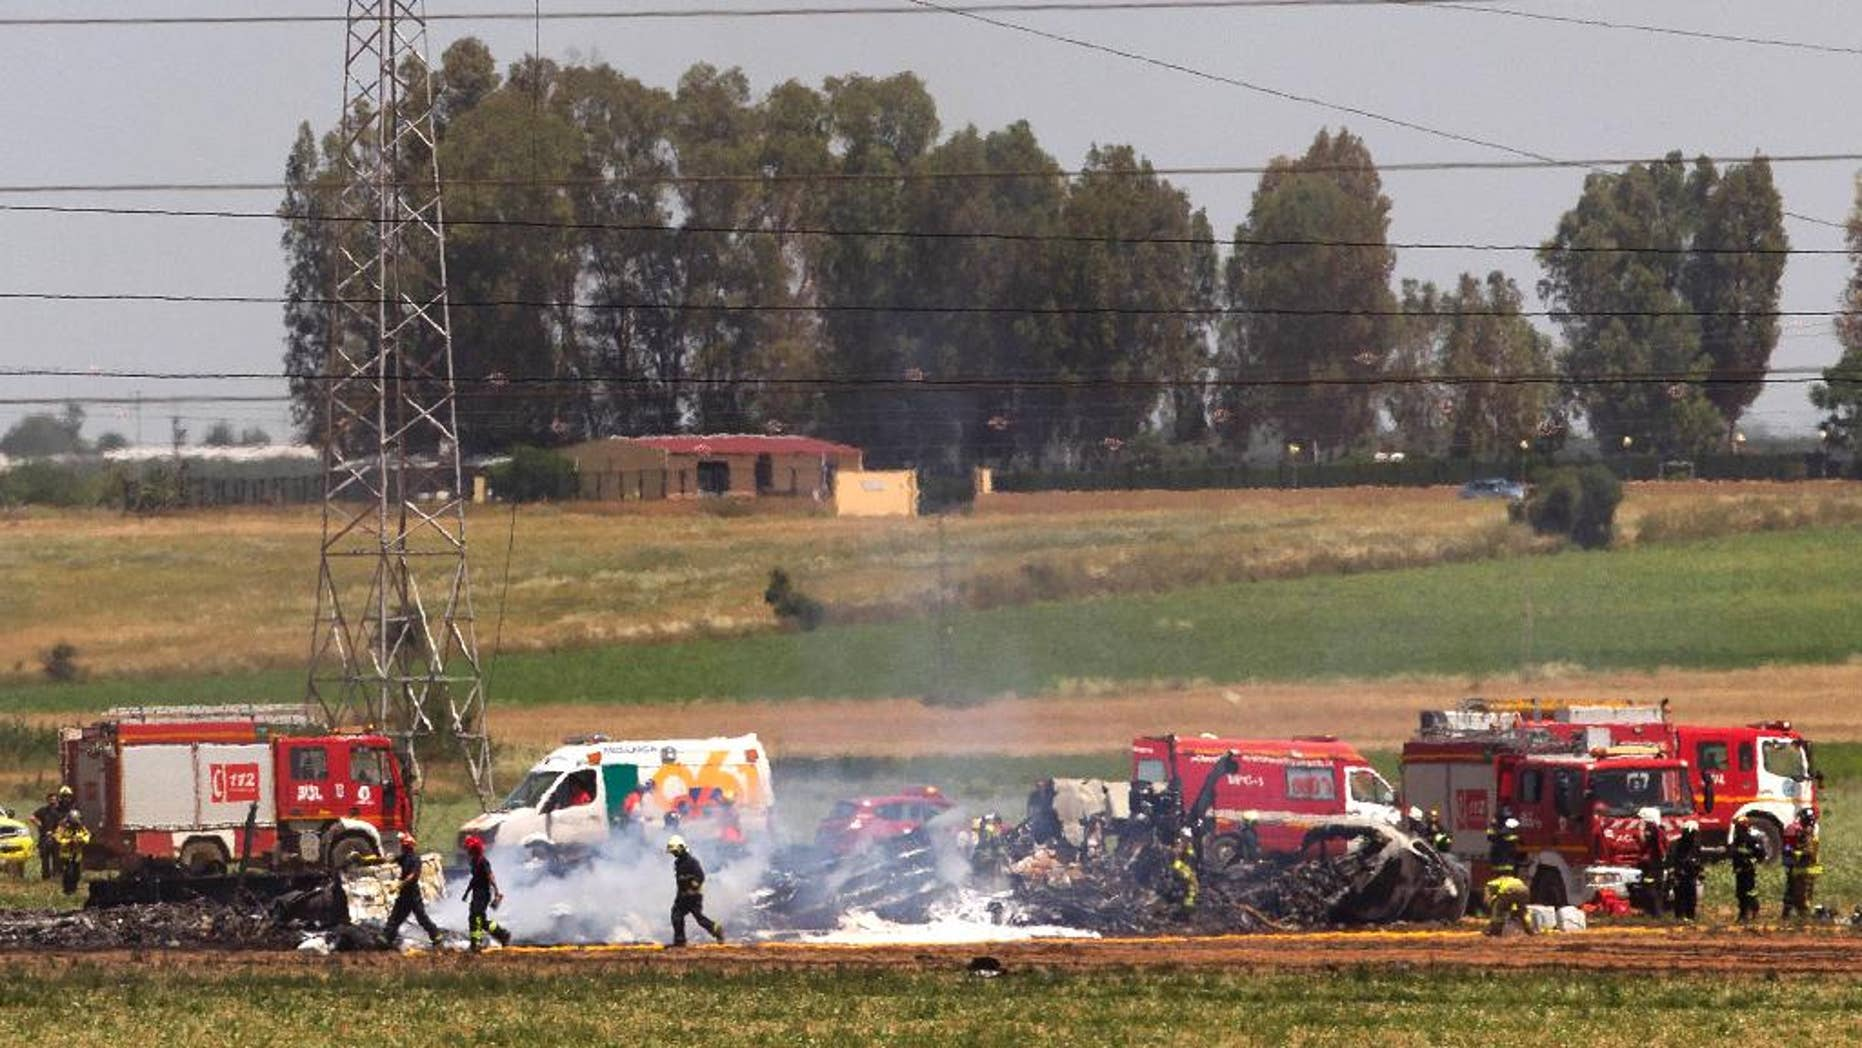 May 9, 2015: Emergency services personnel work at the scene of a plane crash near Seville airport, Seville, Spain.